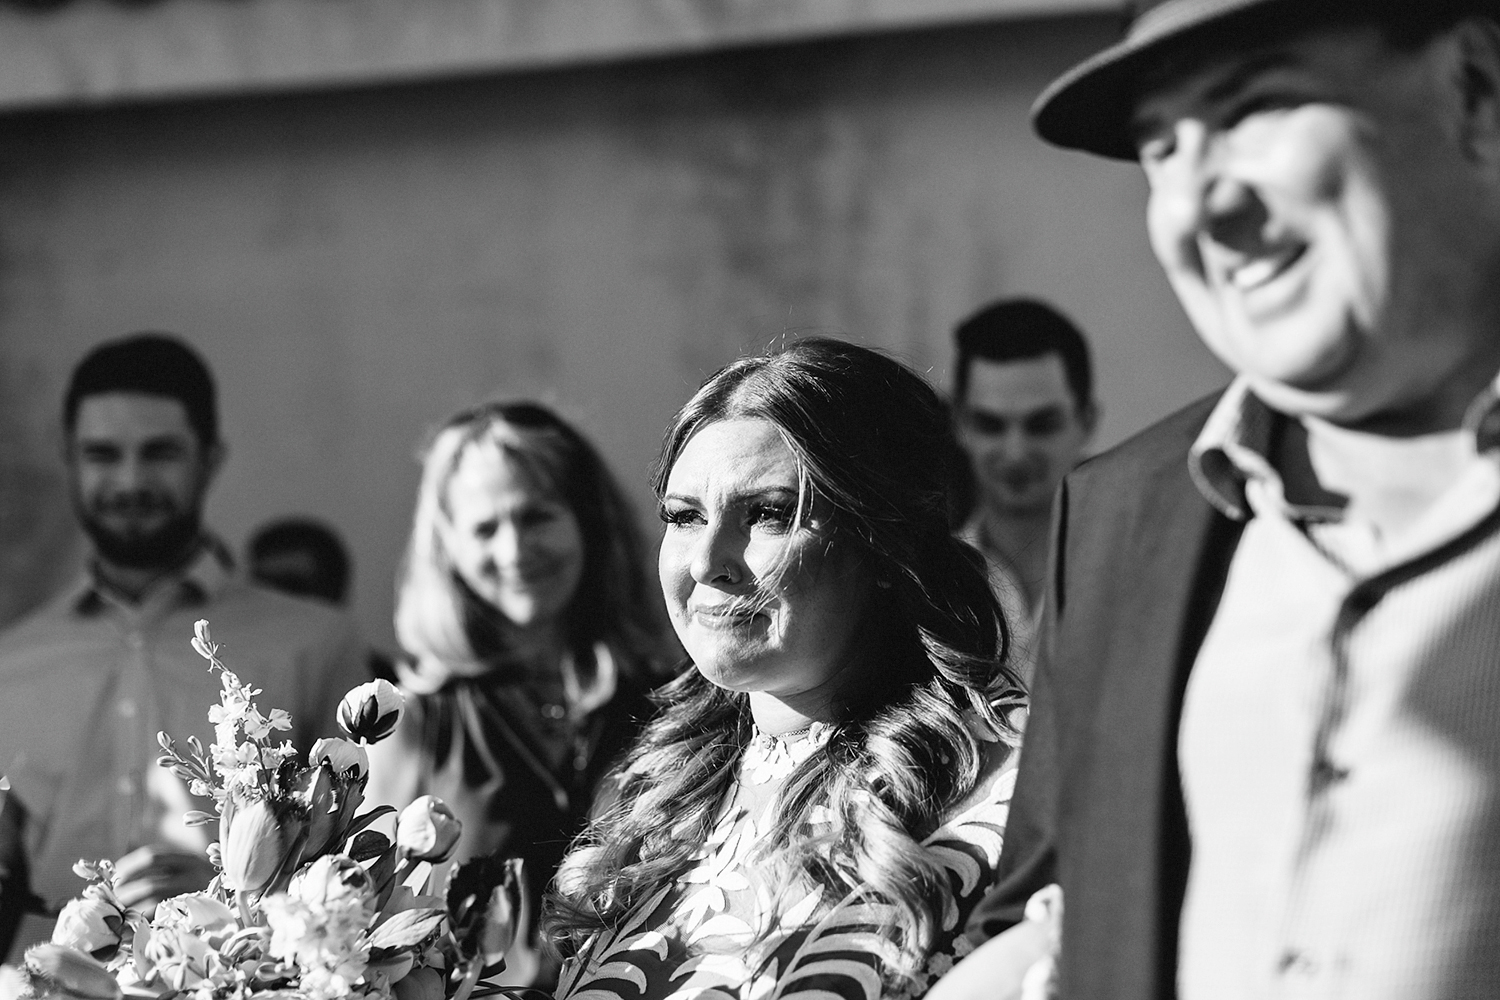 cabo-san-lucas-wedding-travelling-destination-wedding-photographer-toronto-wedding-photographers-3b-photography-hipster-trendy-documentary-style-mexico-wedding-ceremony-bride-walking-down-the-isle-crying-emotional.jpg